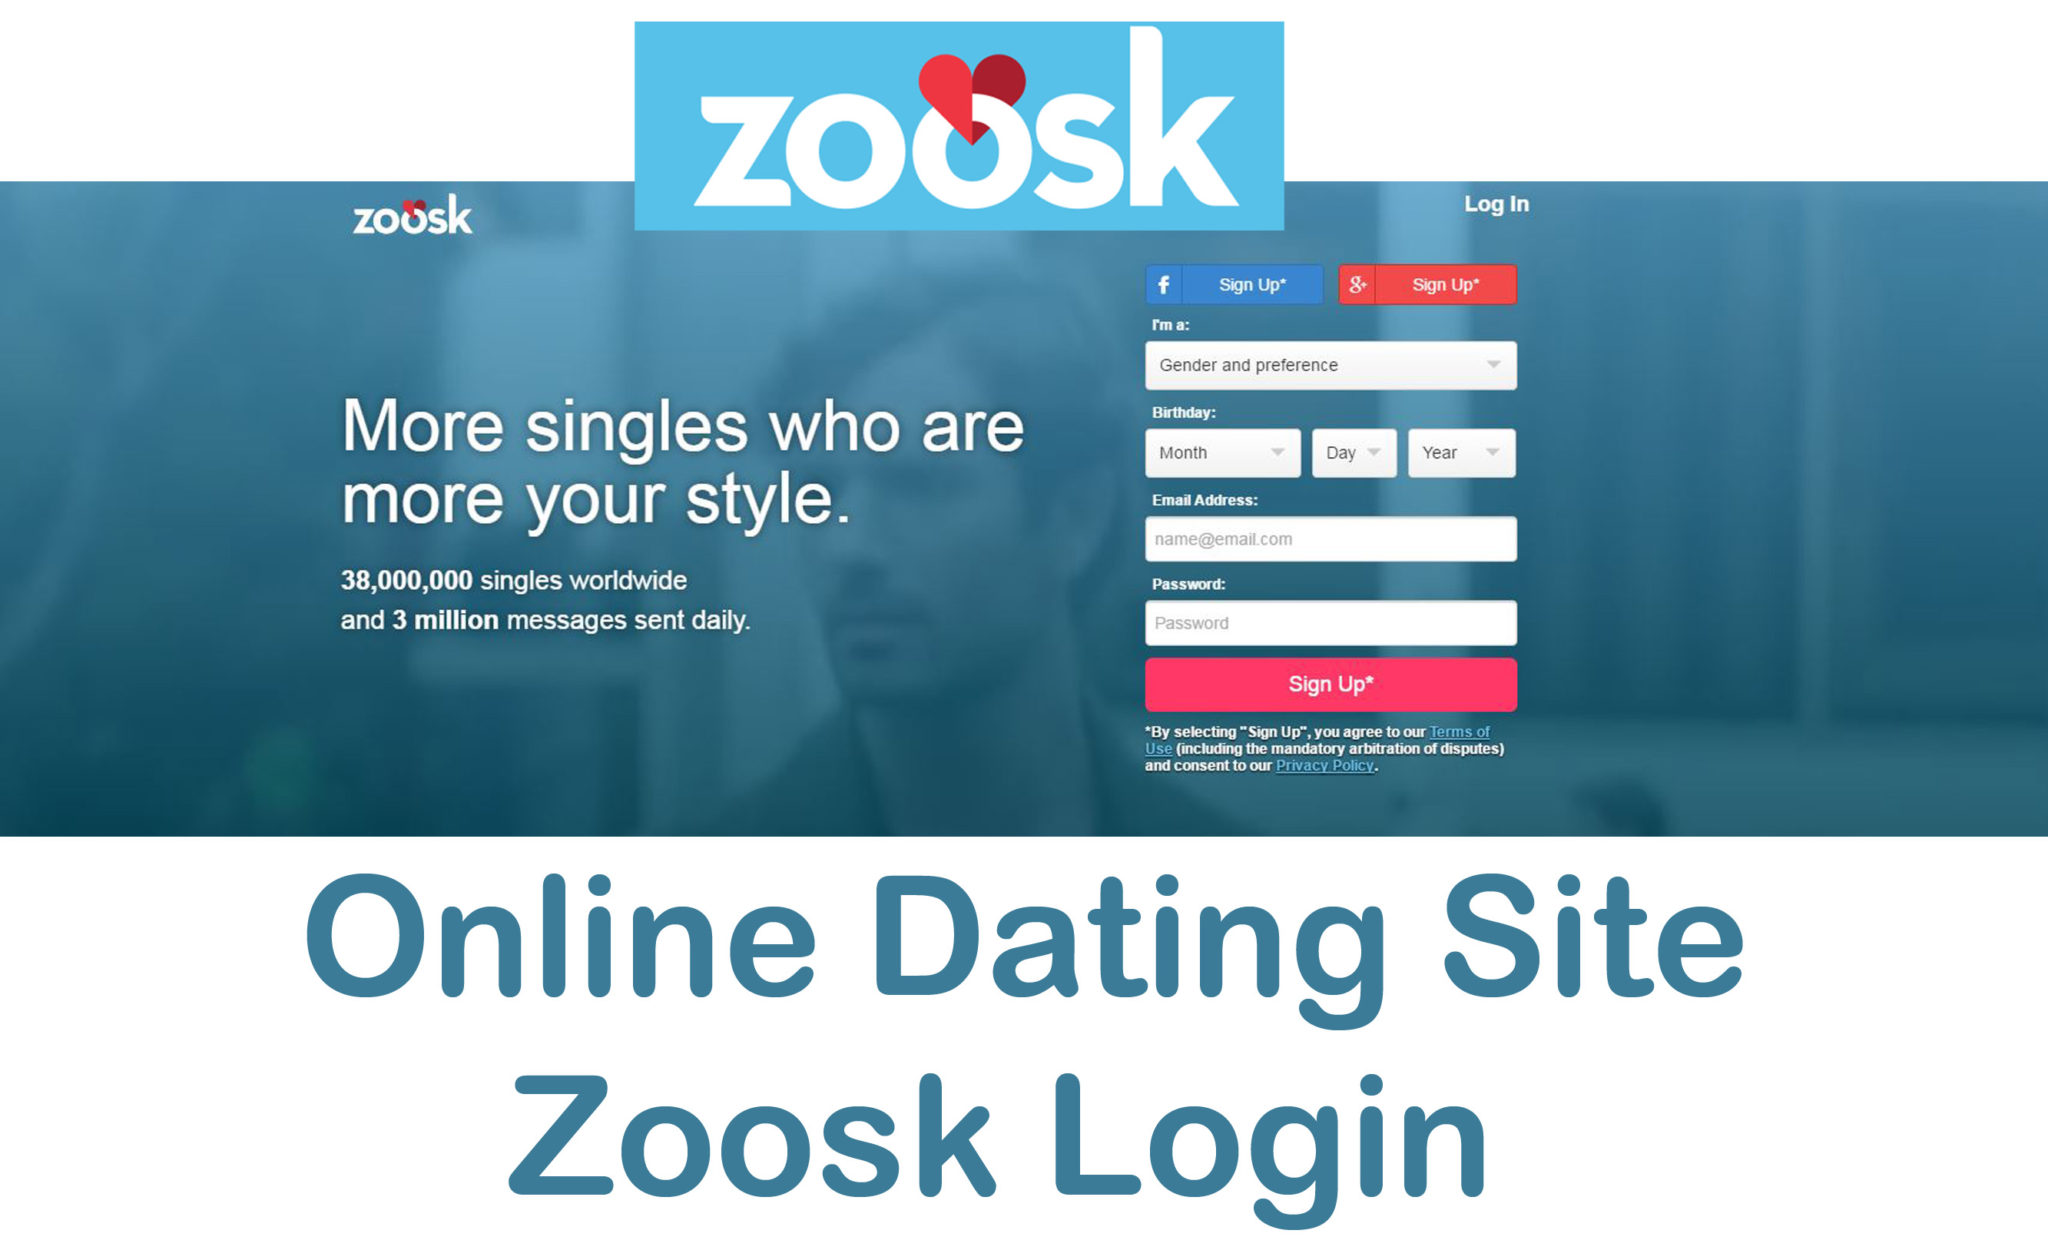 Zoosk online dating site